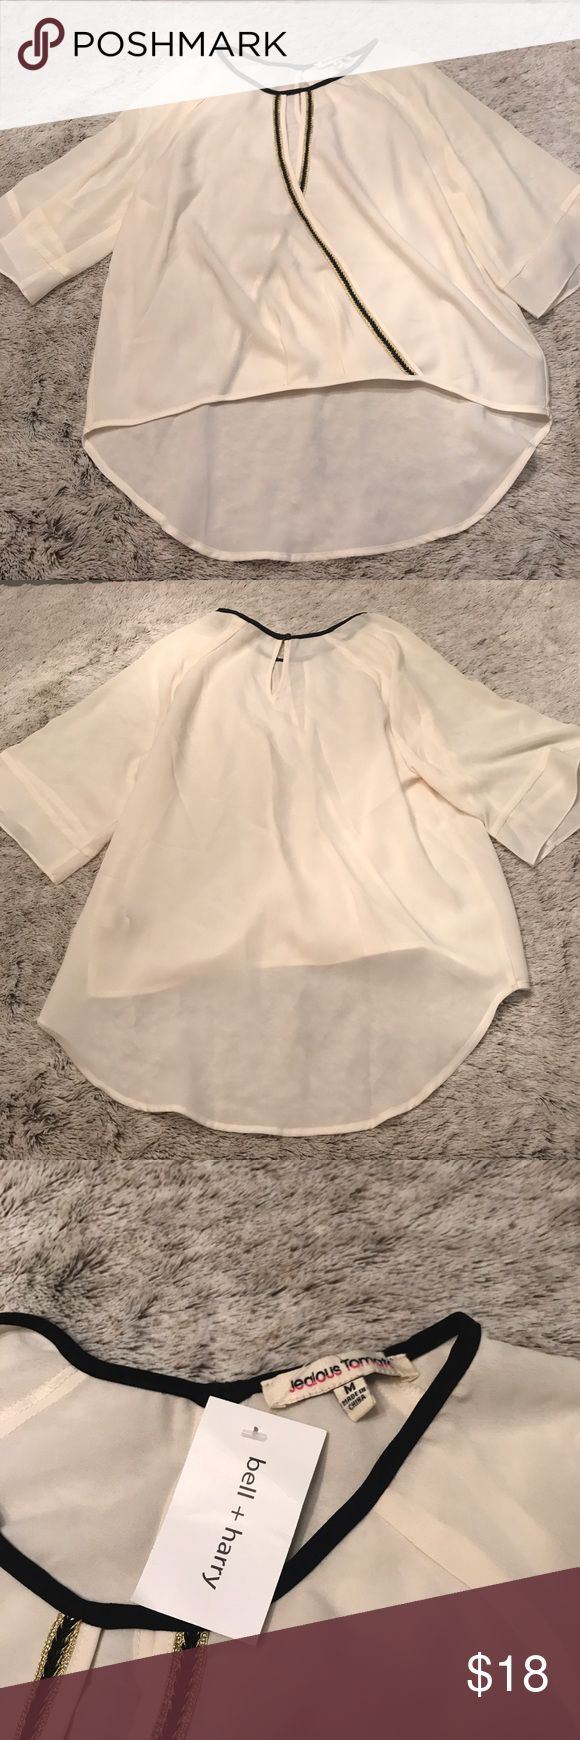 BNWT Keyhole Flowing Blouse BNWT Keyhole Flowing Blouse Tops Blouses